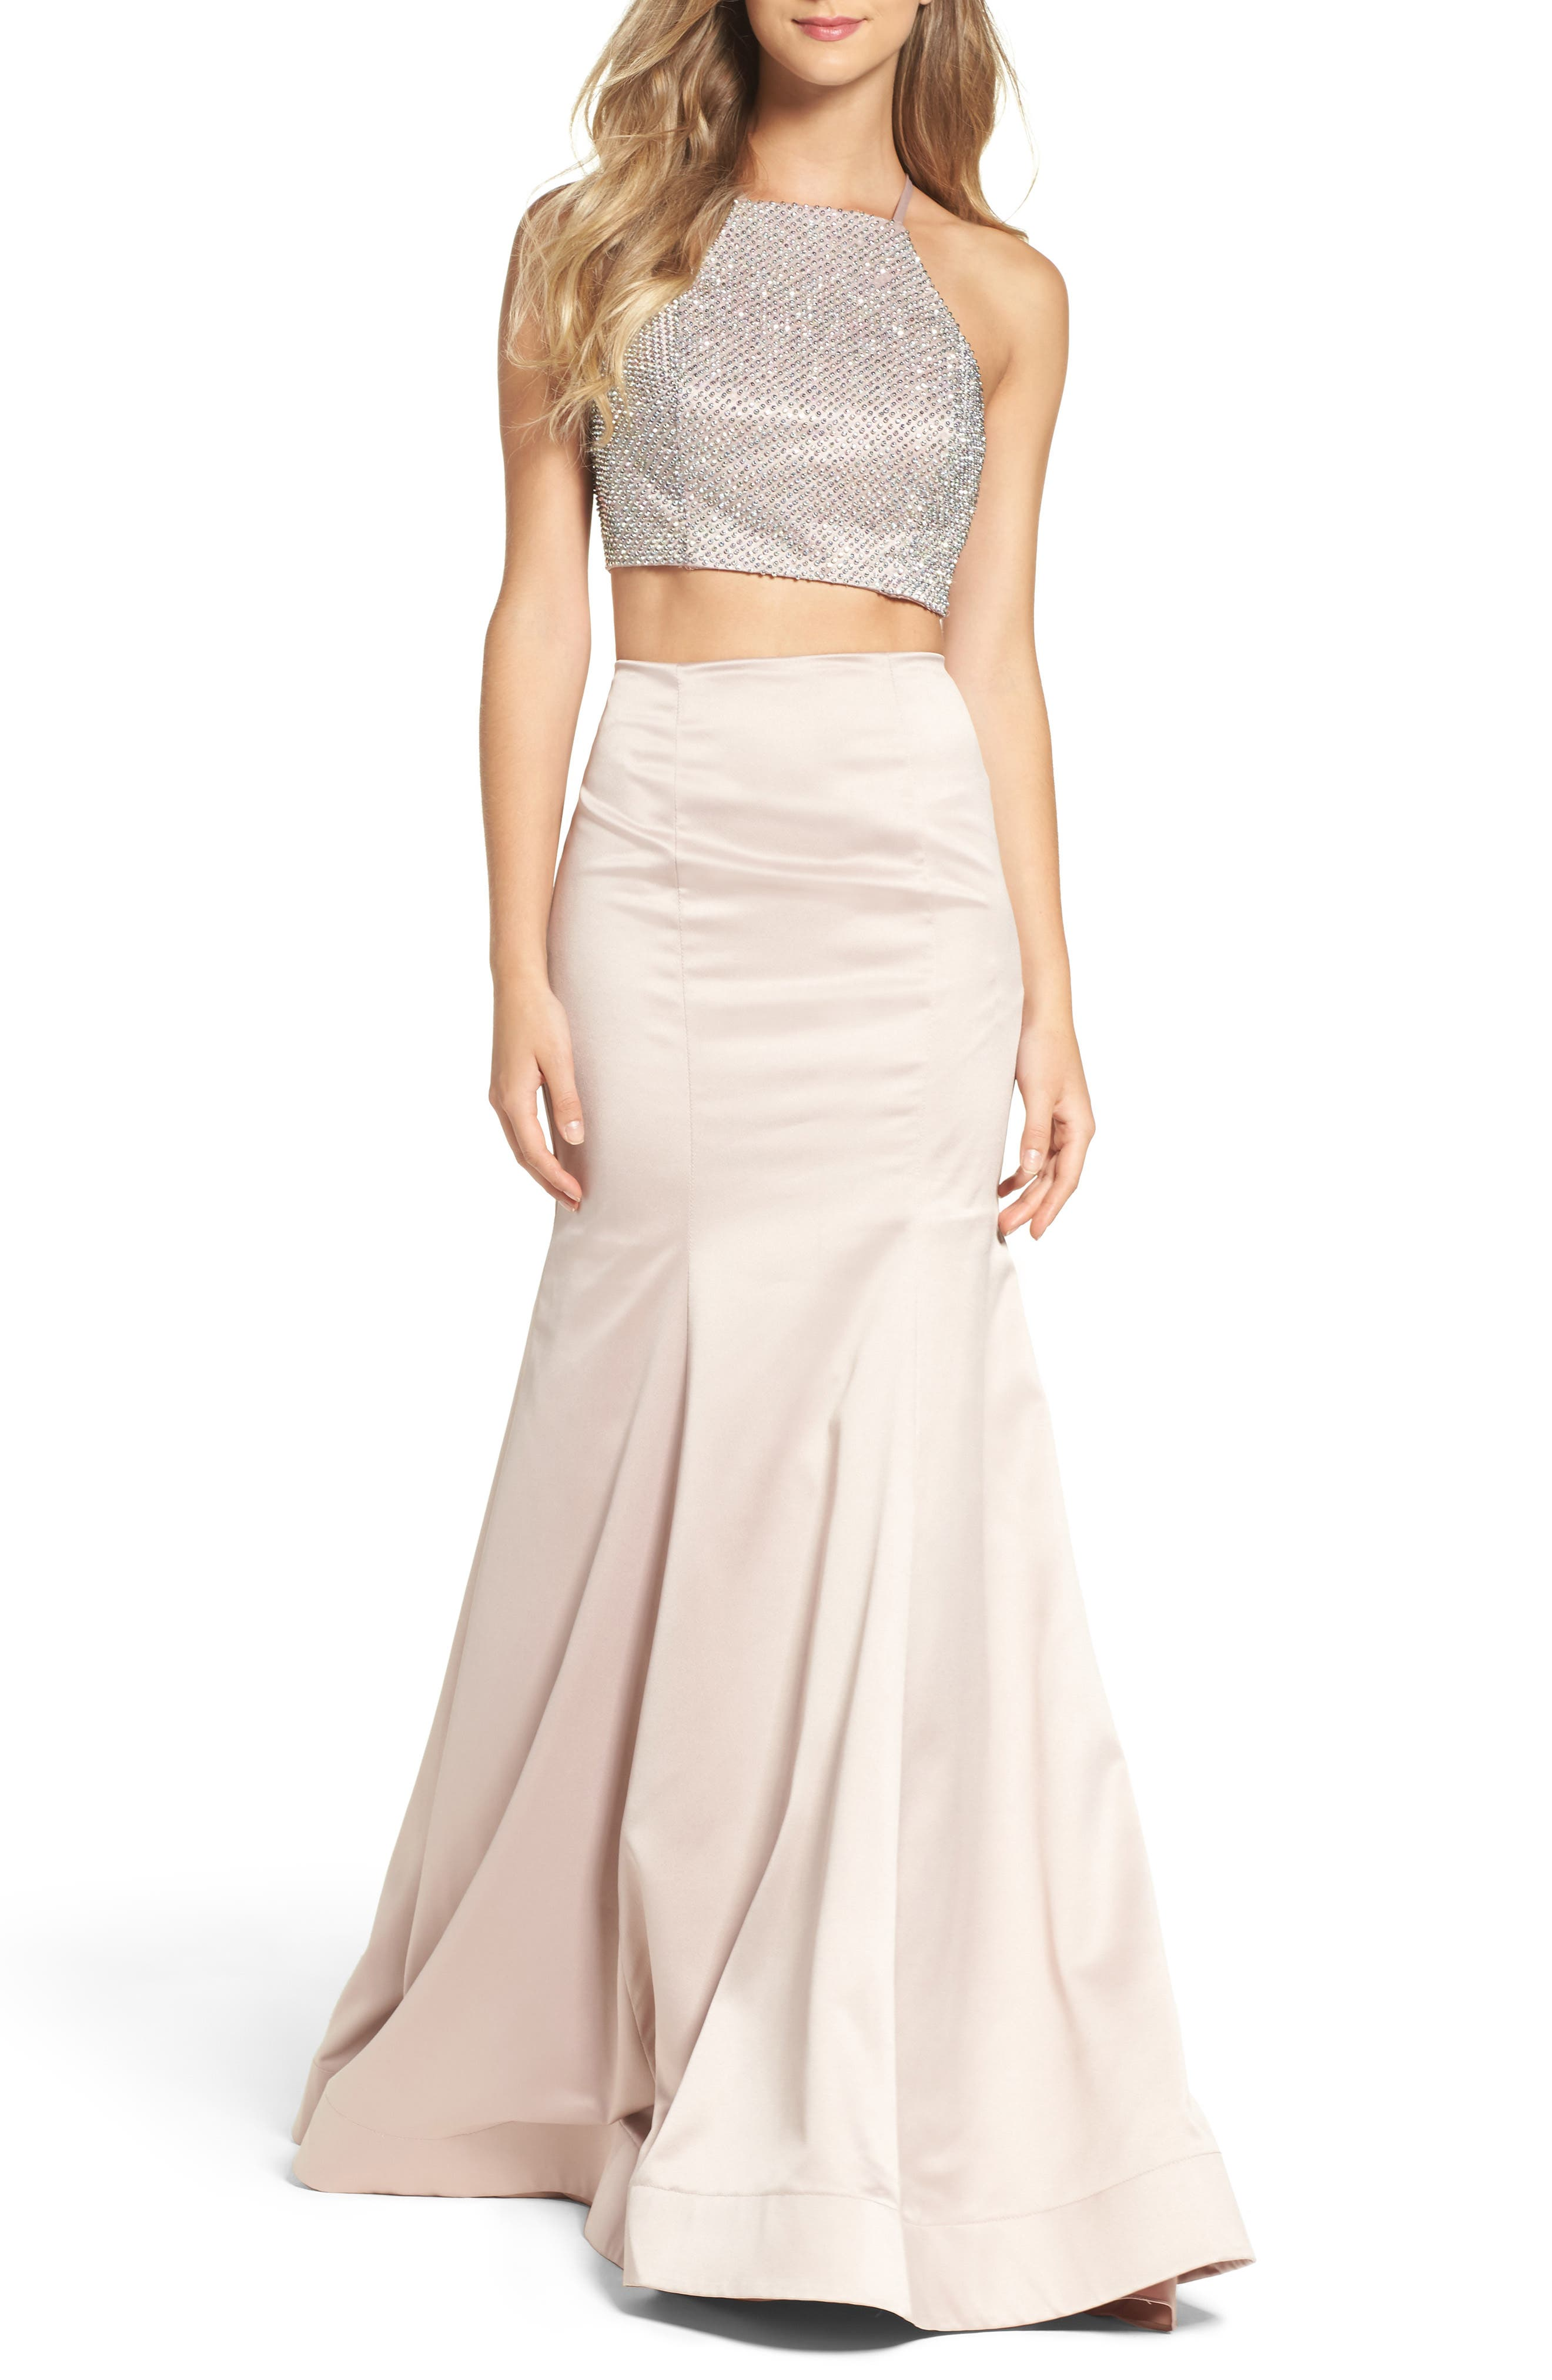 Main Image - La Femme Beaded Two-Piece Mermaid Gown